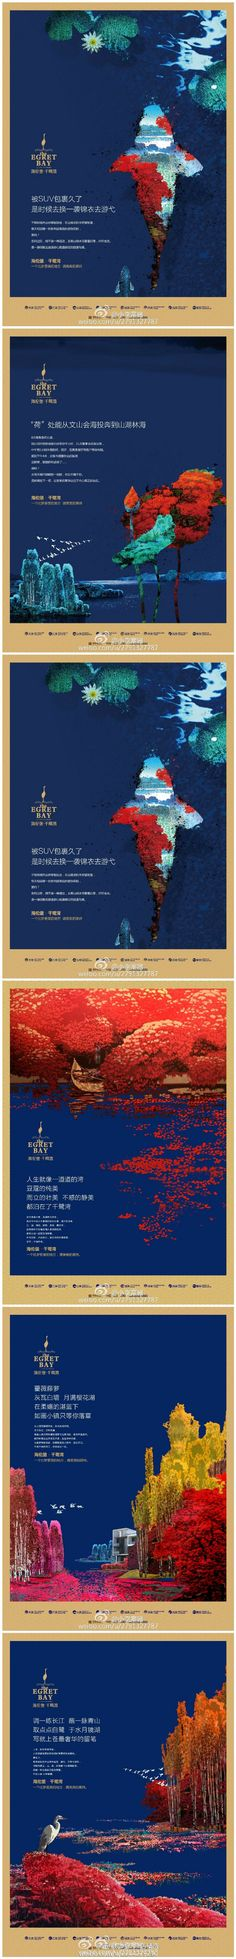 Chongqing real estate ads featured pictures - Micro album @s ...